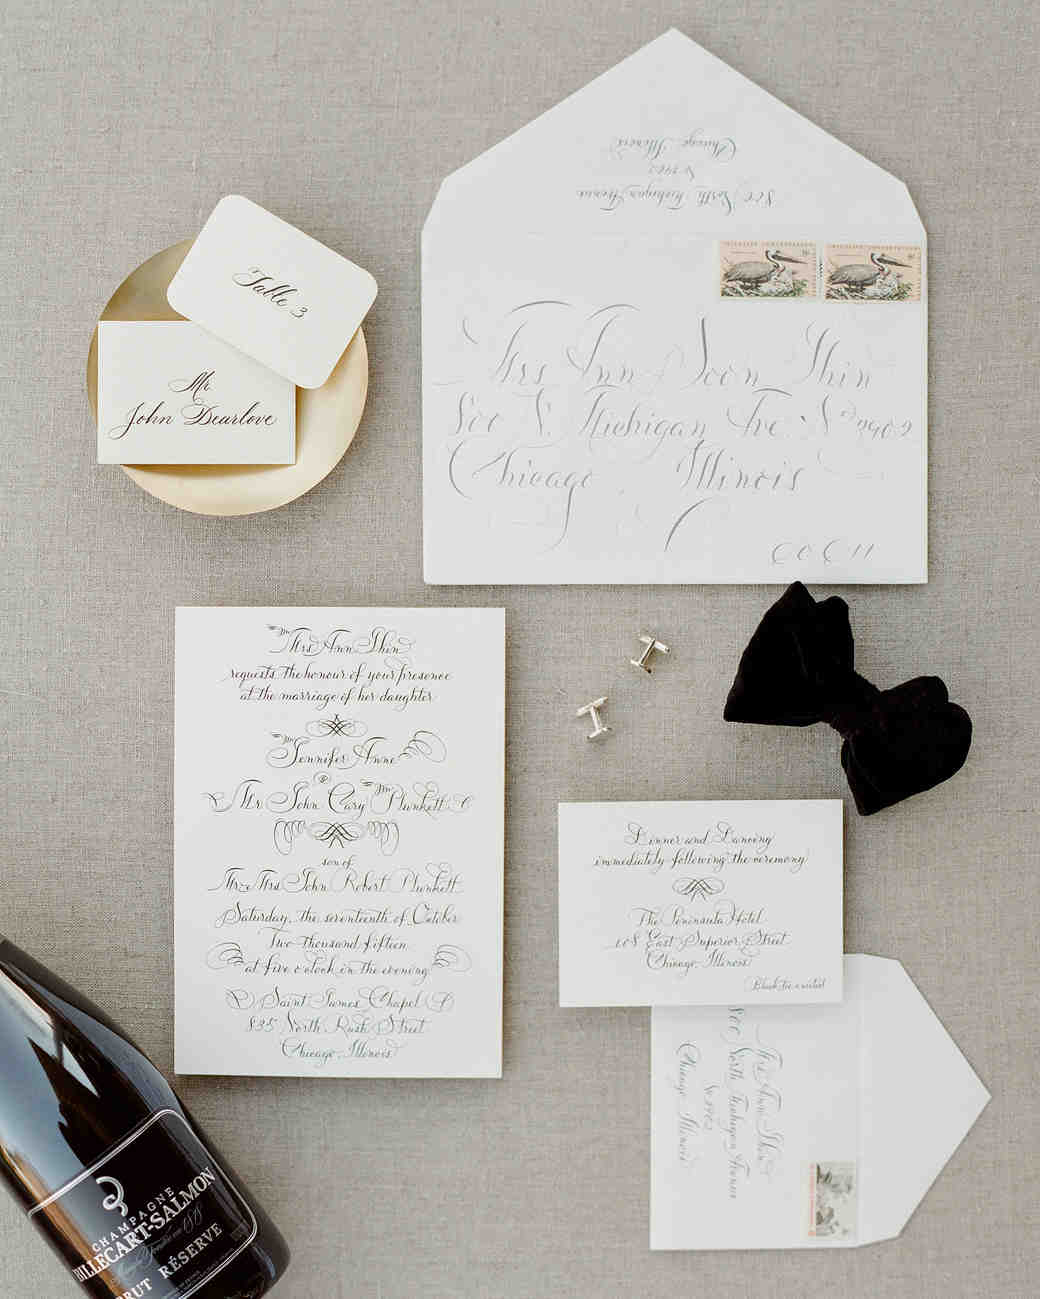 classic invitation with calligraphy flourished style